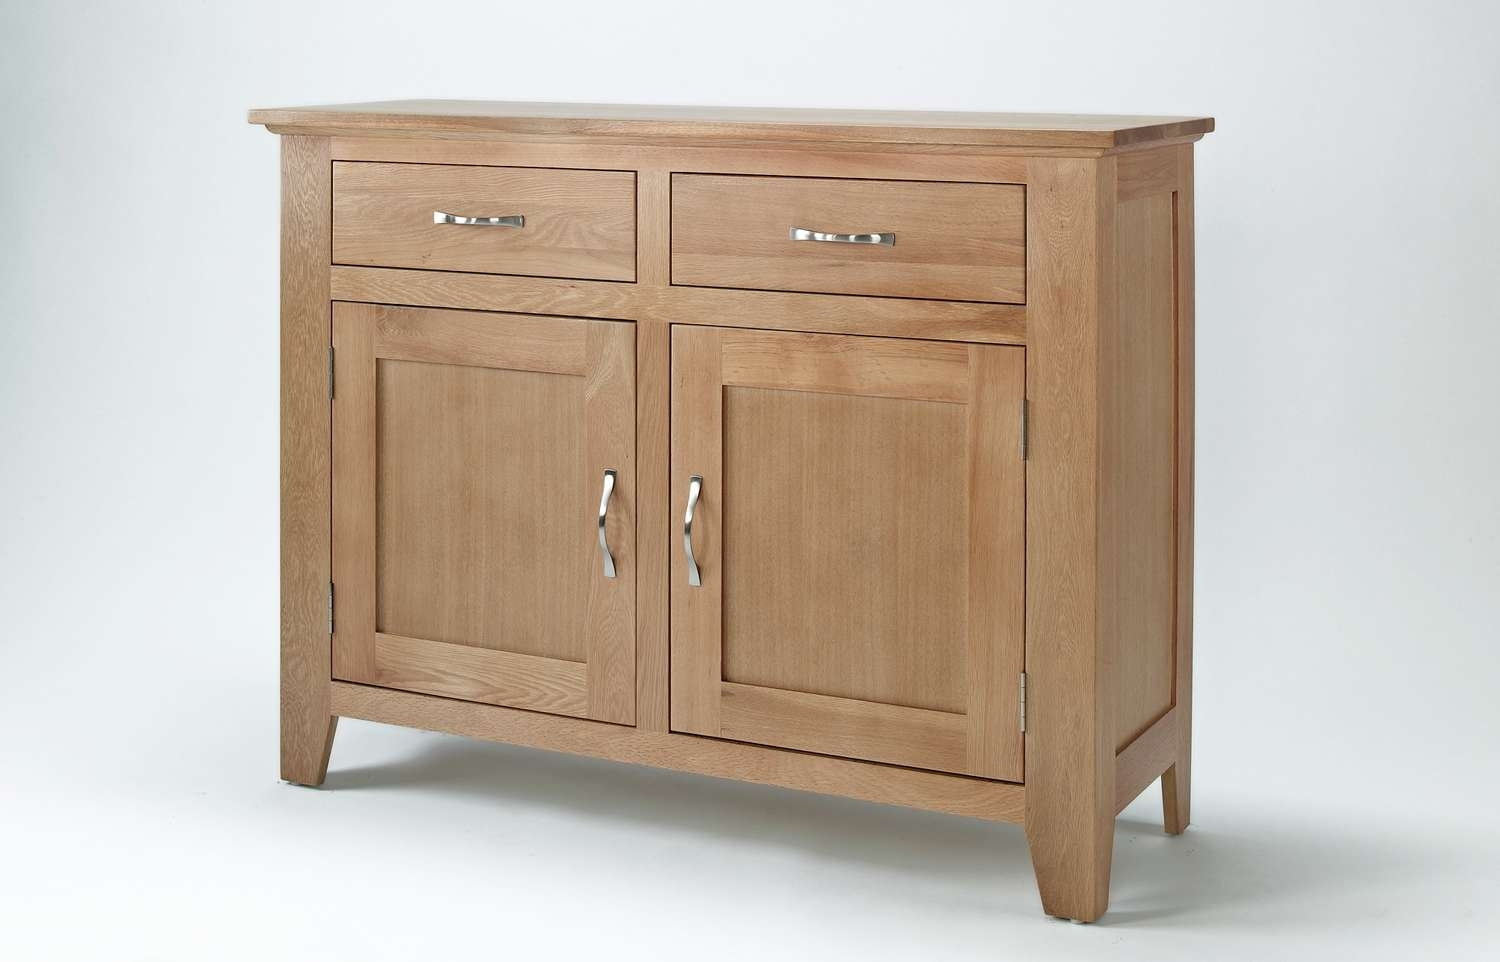 Sherwood Oak Sideboard With 2 Doors & 2 Drawers Intended For Sideboards With Drawers (View 17 of 20)